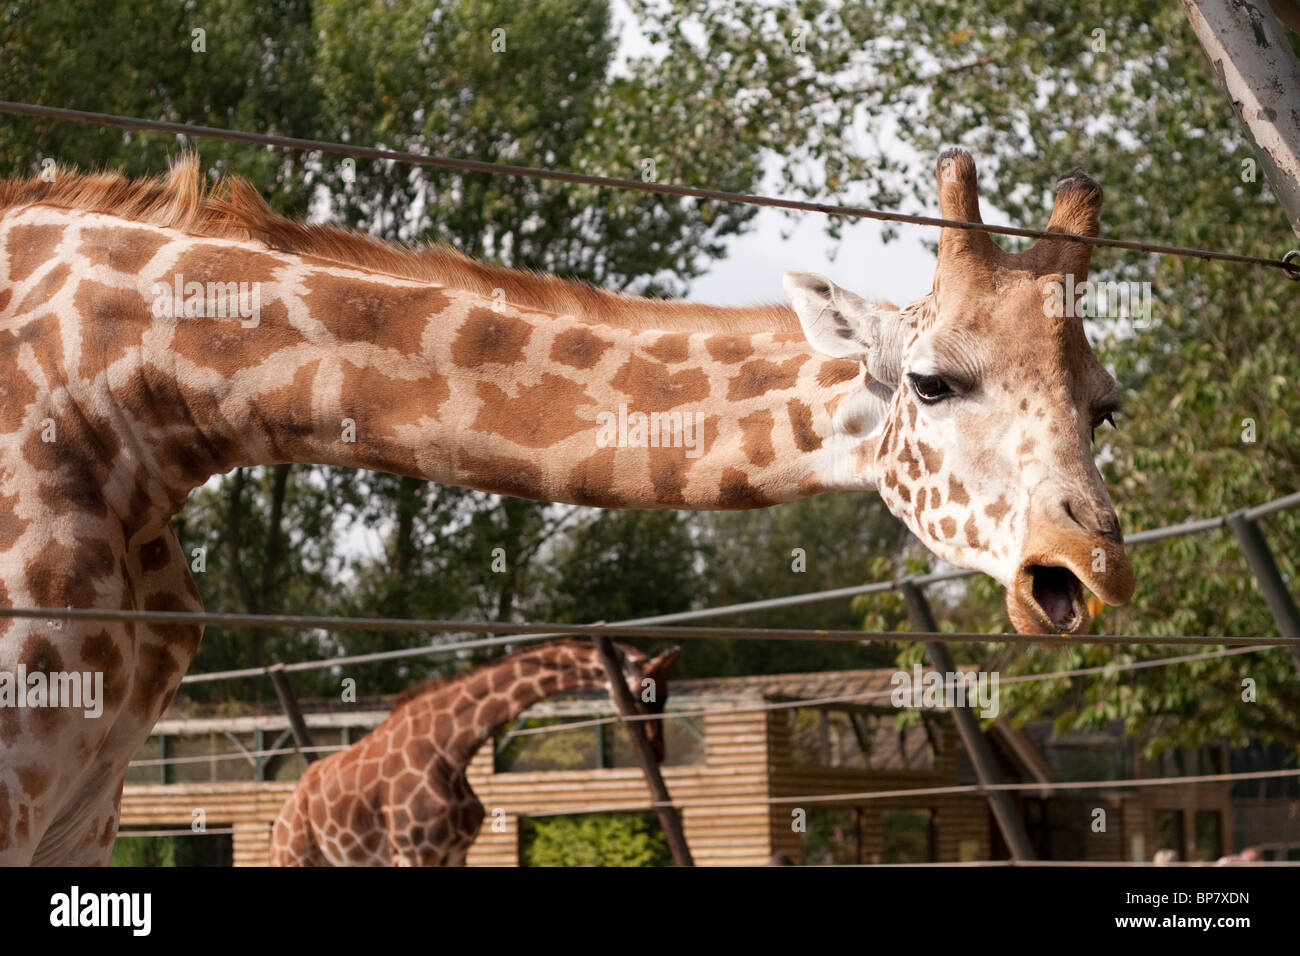 analysis of twycross zoo organisation Twycross menagerie is located in the small town of twycross in leicestershire most of the population are within an hr of twycross menagerie, approx 9 million.